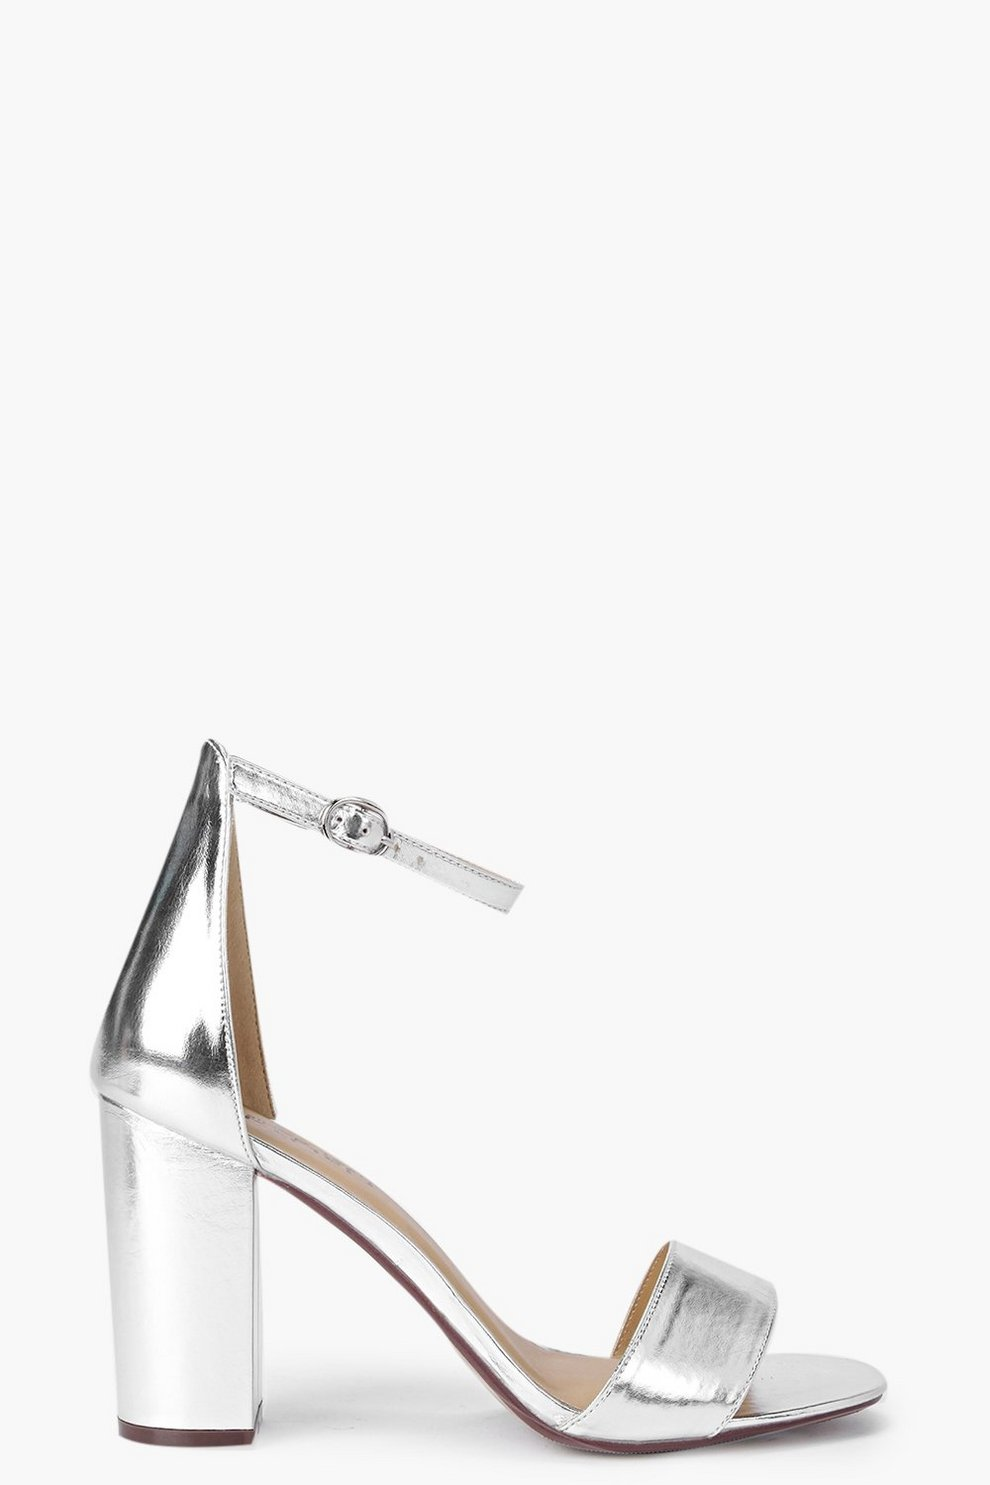 outlet locations online Boohoo Ankle Tie Block Heeled Sandals discount top quality browse cheap price W7H9A9v